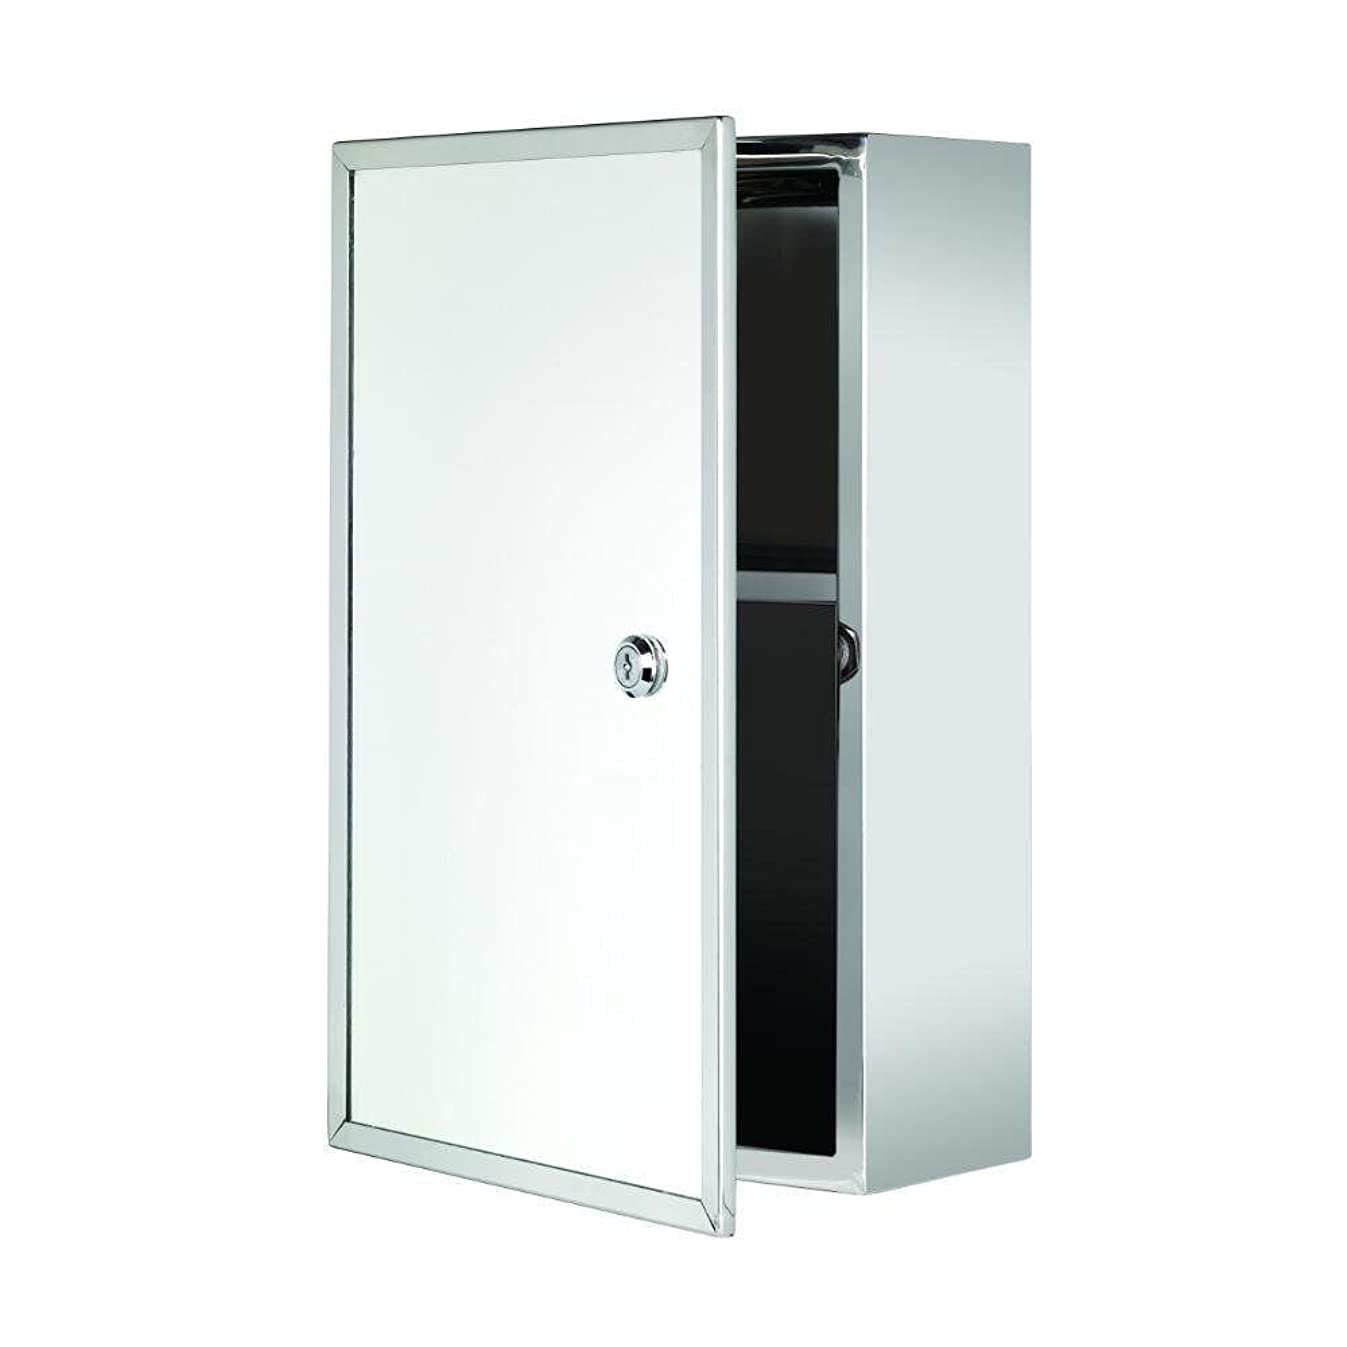 Croydex Trent Stainless Steel Lockable Surface Mount Medicine Cabinet with Keys, 15.7 x 9.8 x 5.2 In.